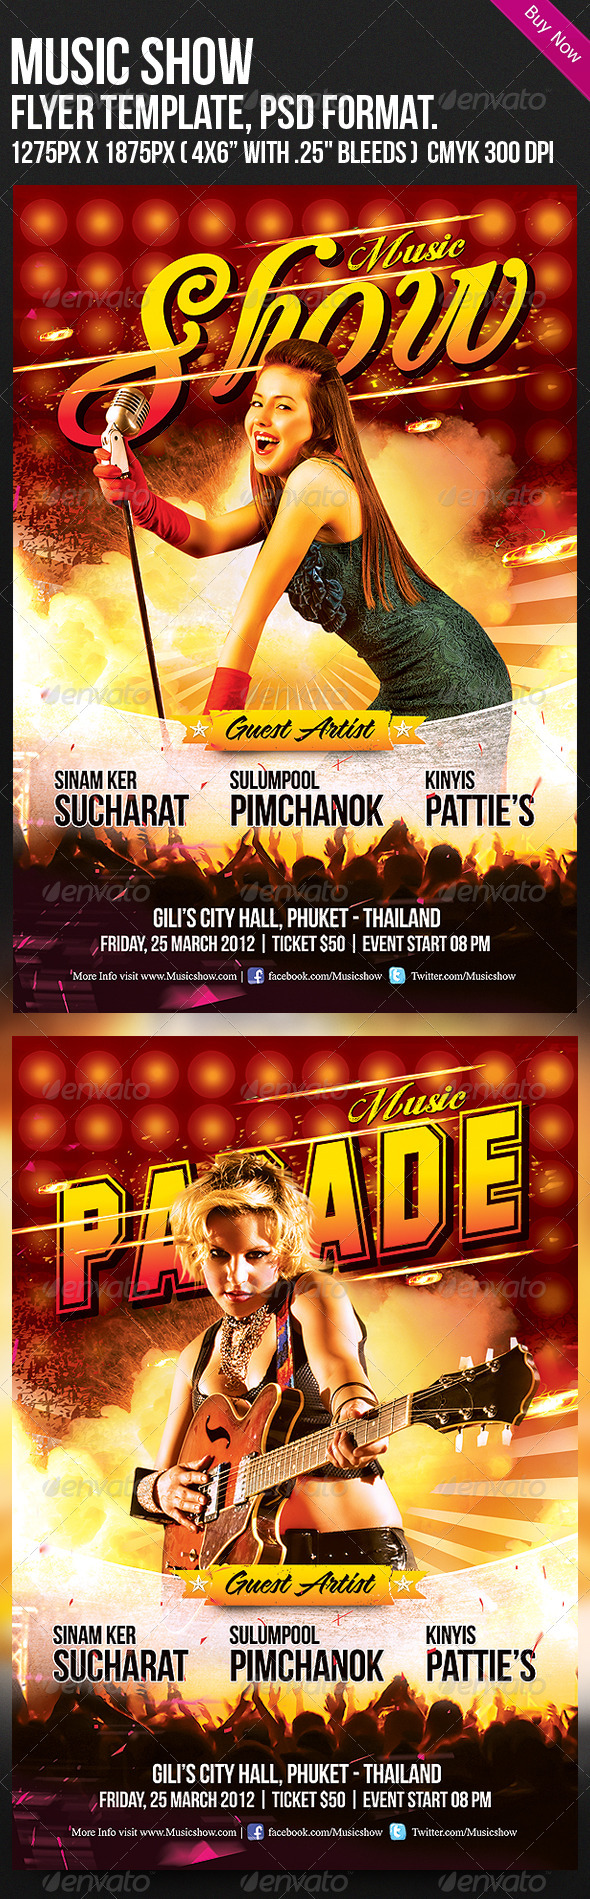 Music Show Flyer Template - Clubs & Parties Events